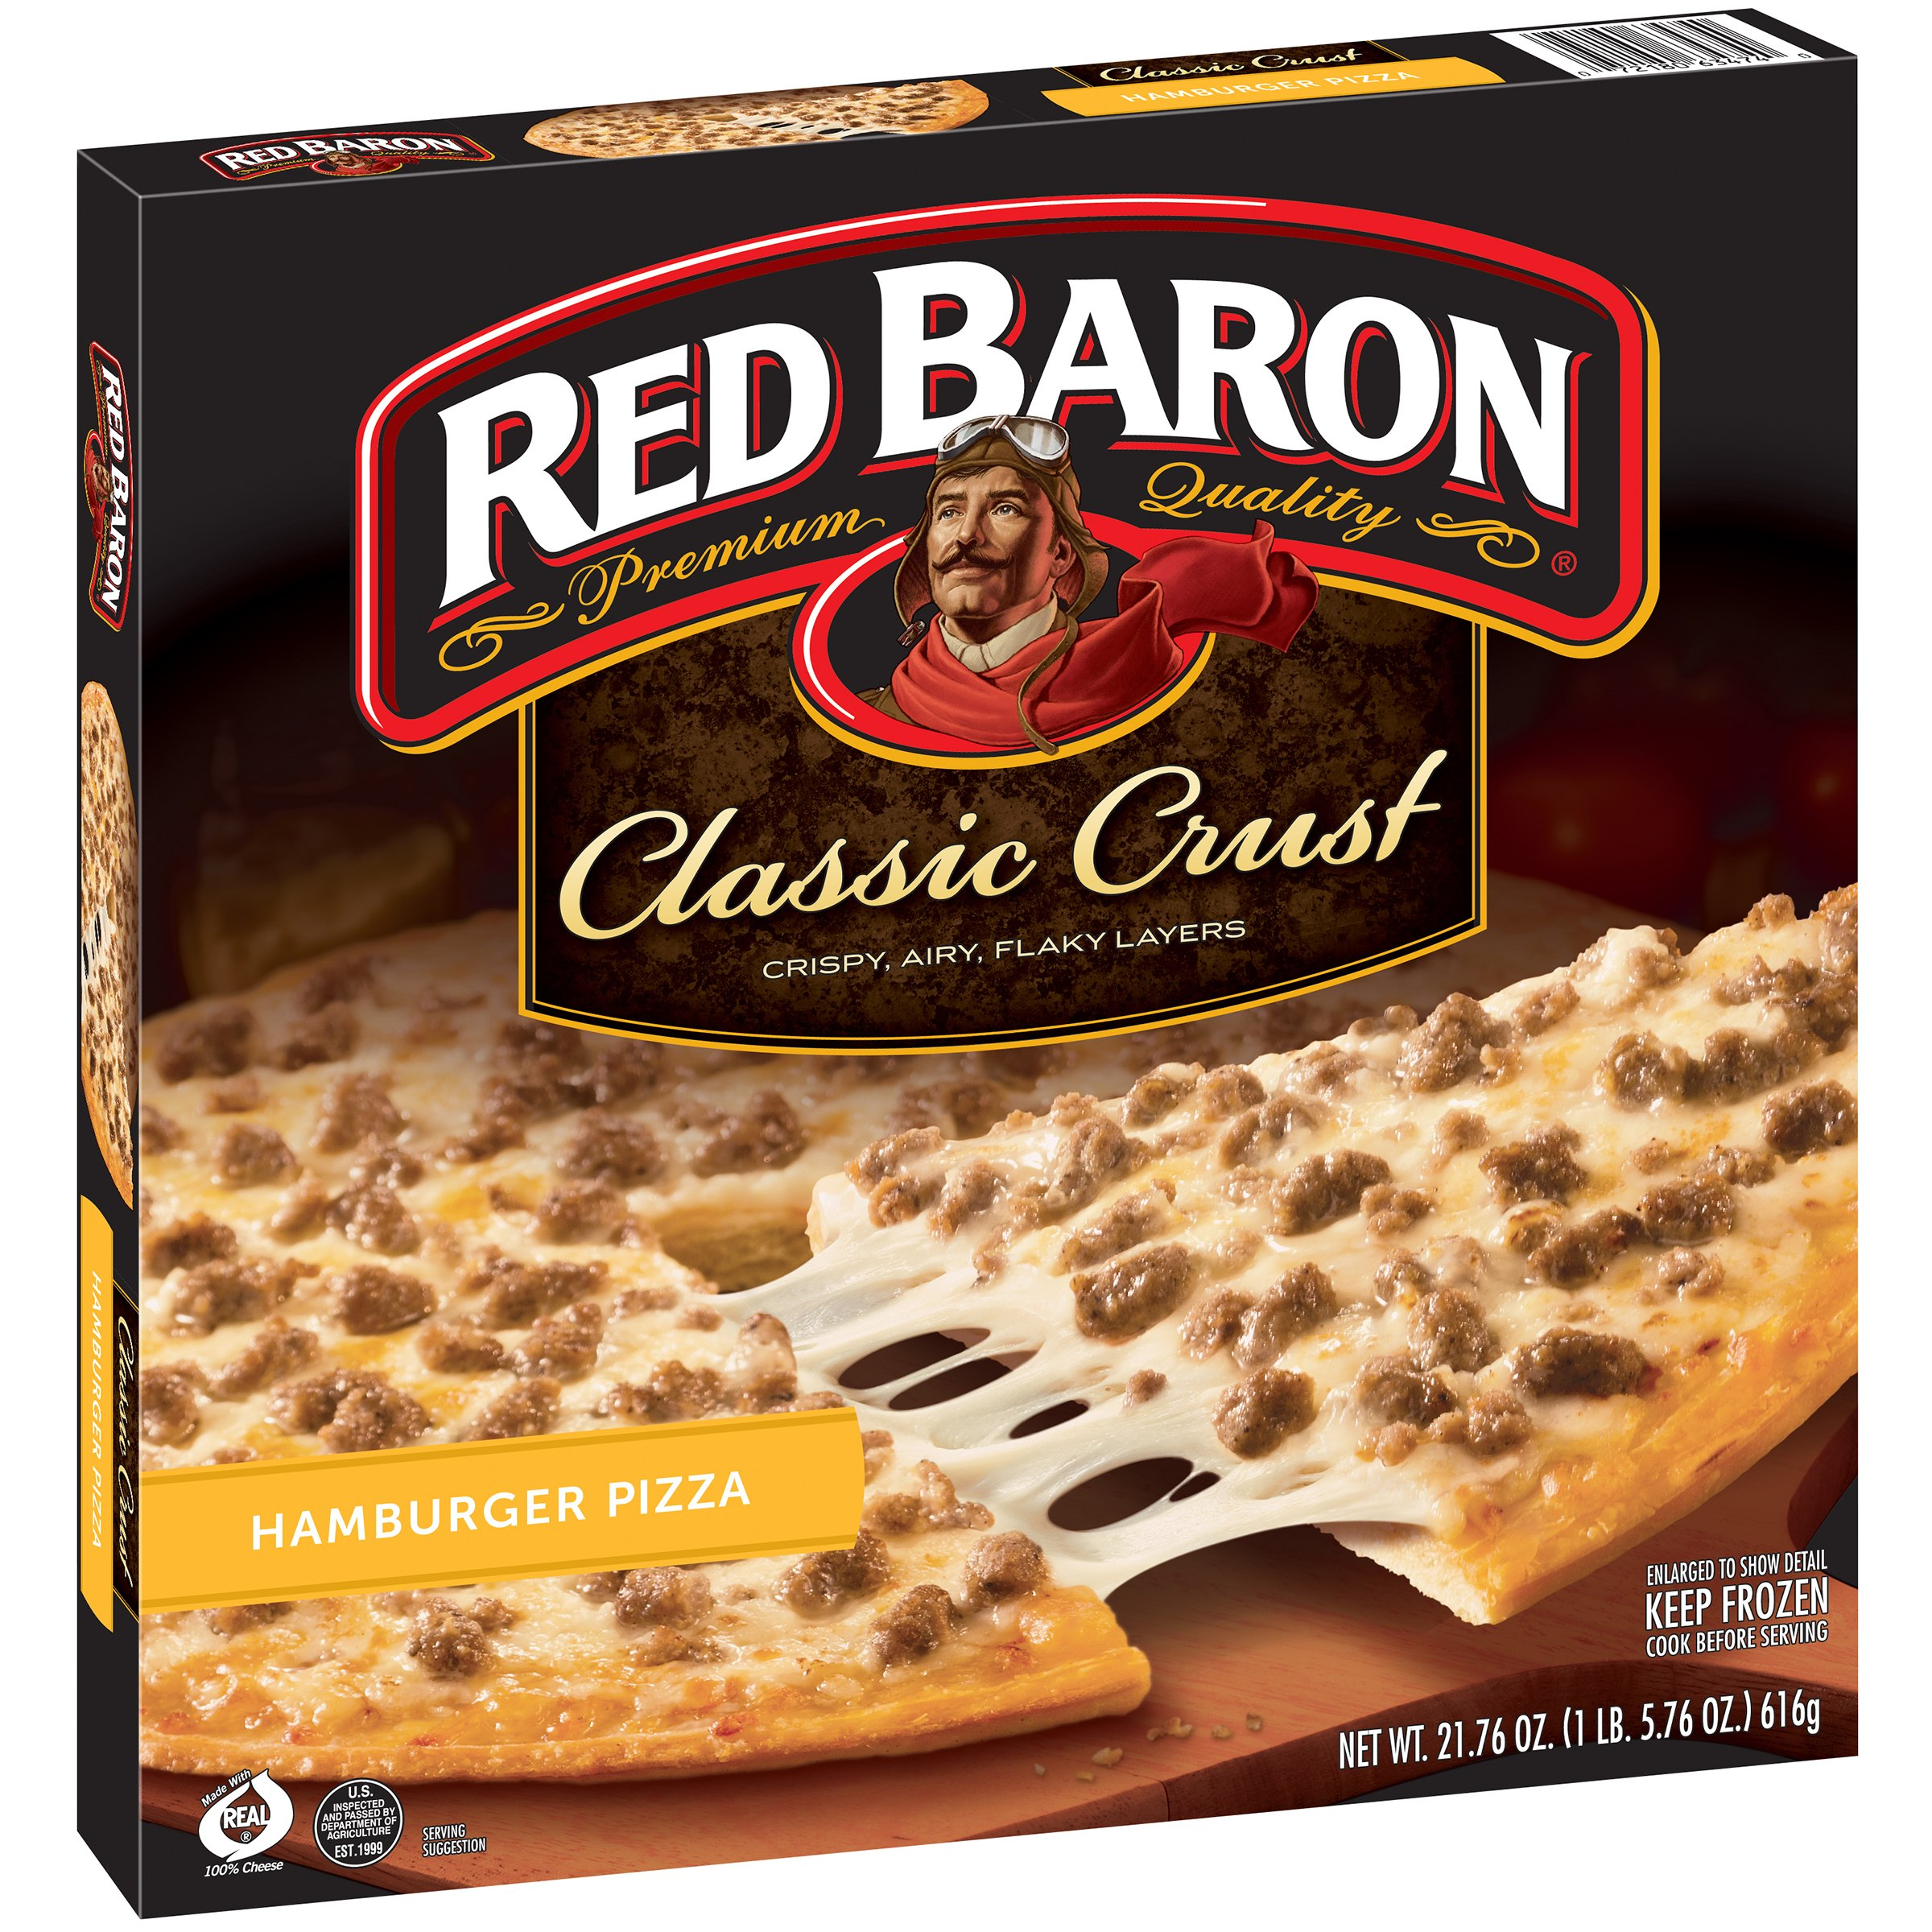 Red Baron® Classic Crust Hamburger Pizza 21.76 oz. Box